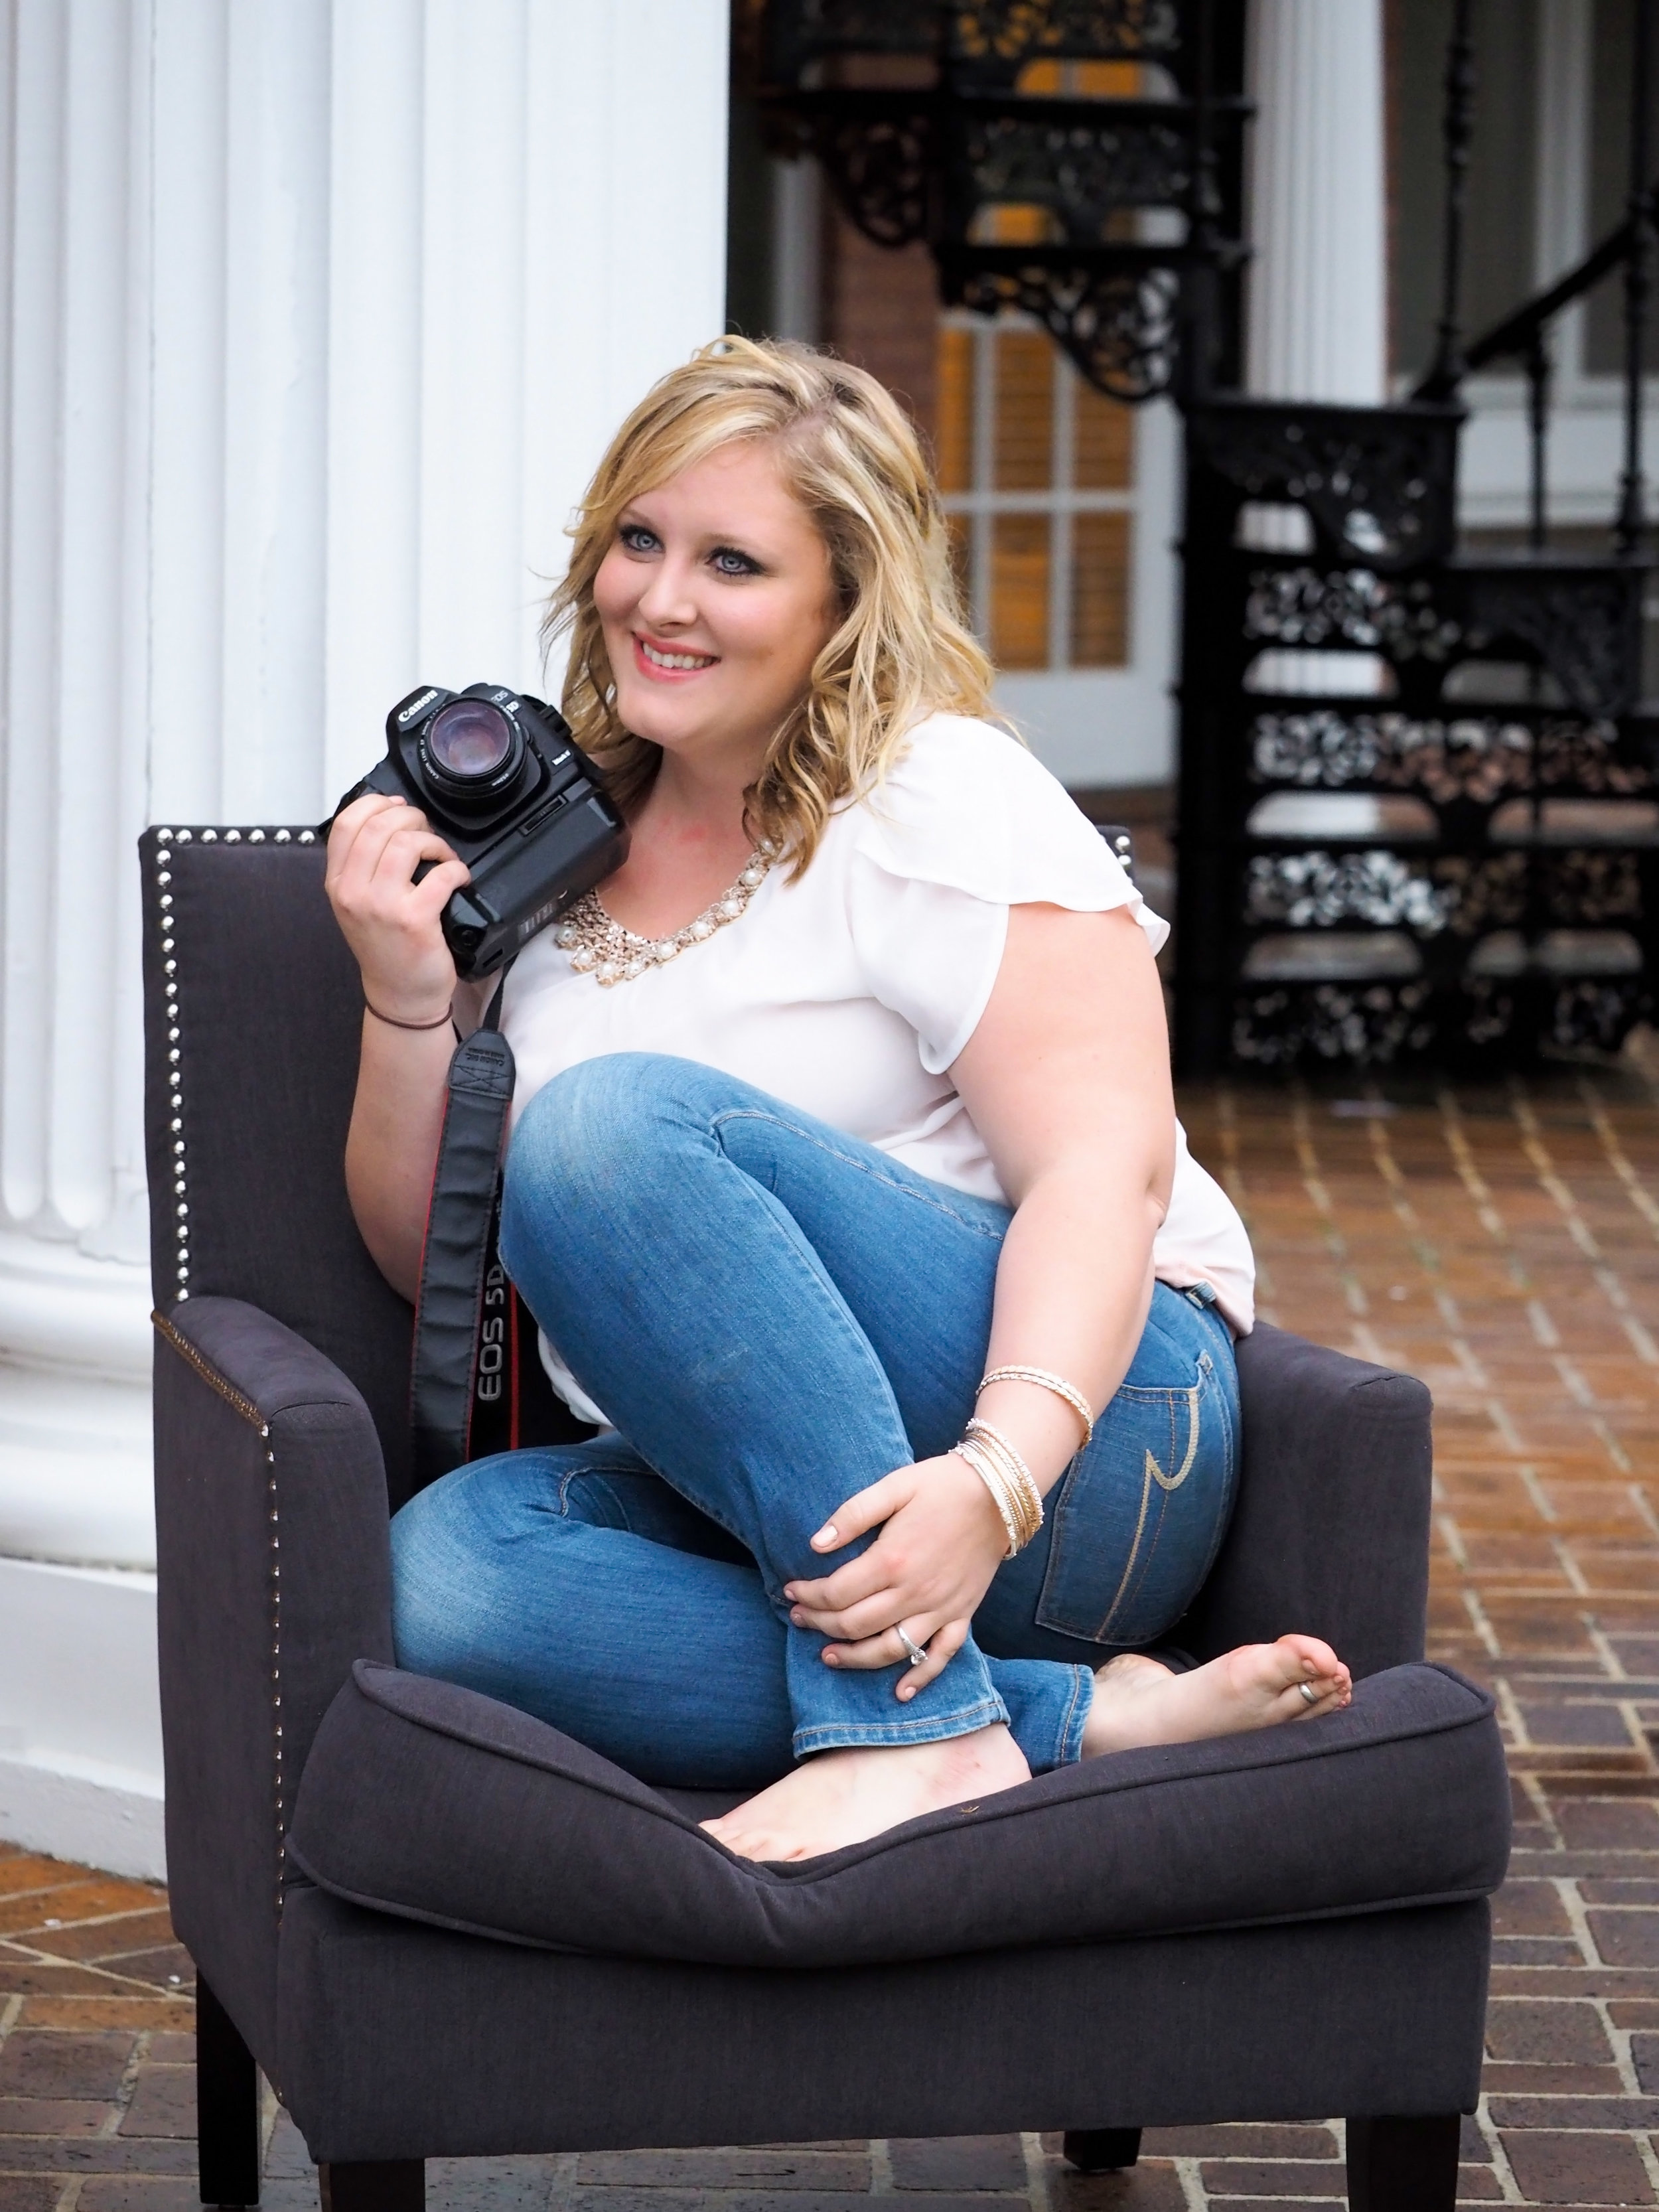 Business photography for women entrepreneurs that want to tell their story and connect with their clients | Bountiful Path Photography